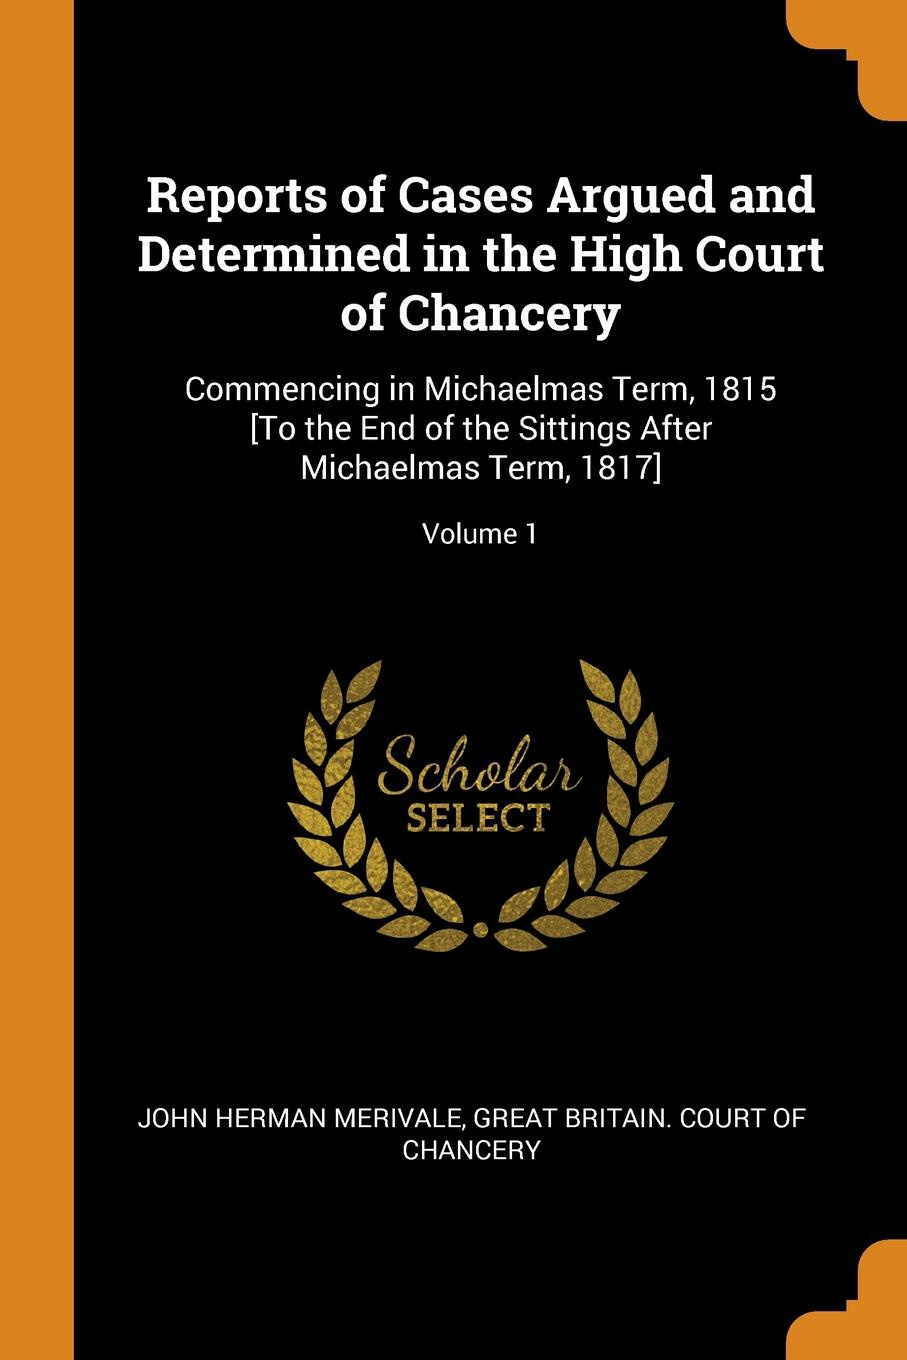 John Herman Merivale. Reports of Cases Argued and Determined in the High Court of Chancery. Commencing in Michaelmas Term, 1815 .To the End of the Sittings After Michaelmas Term, 1817.; Volume 1